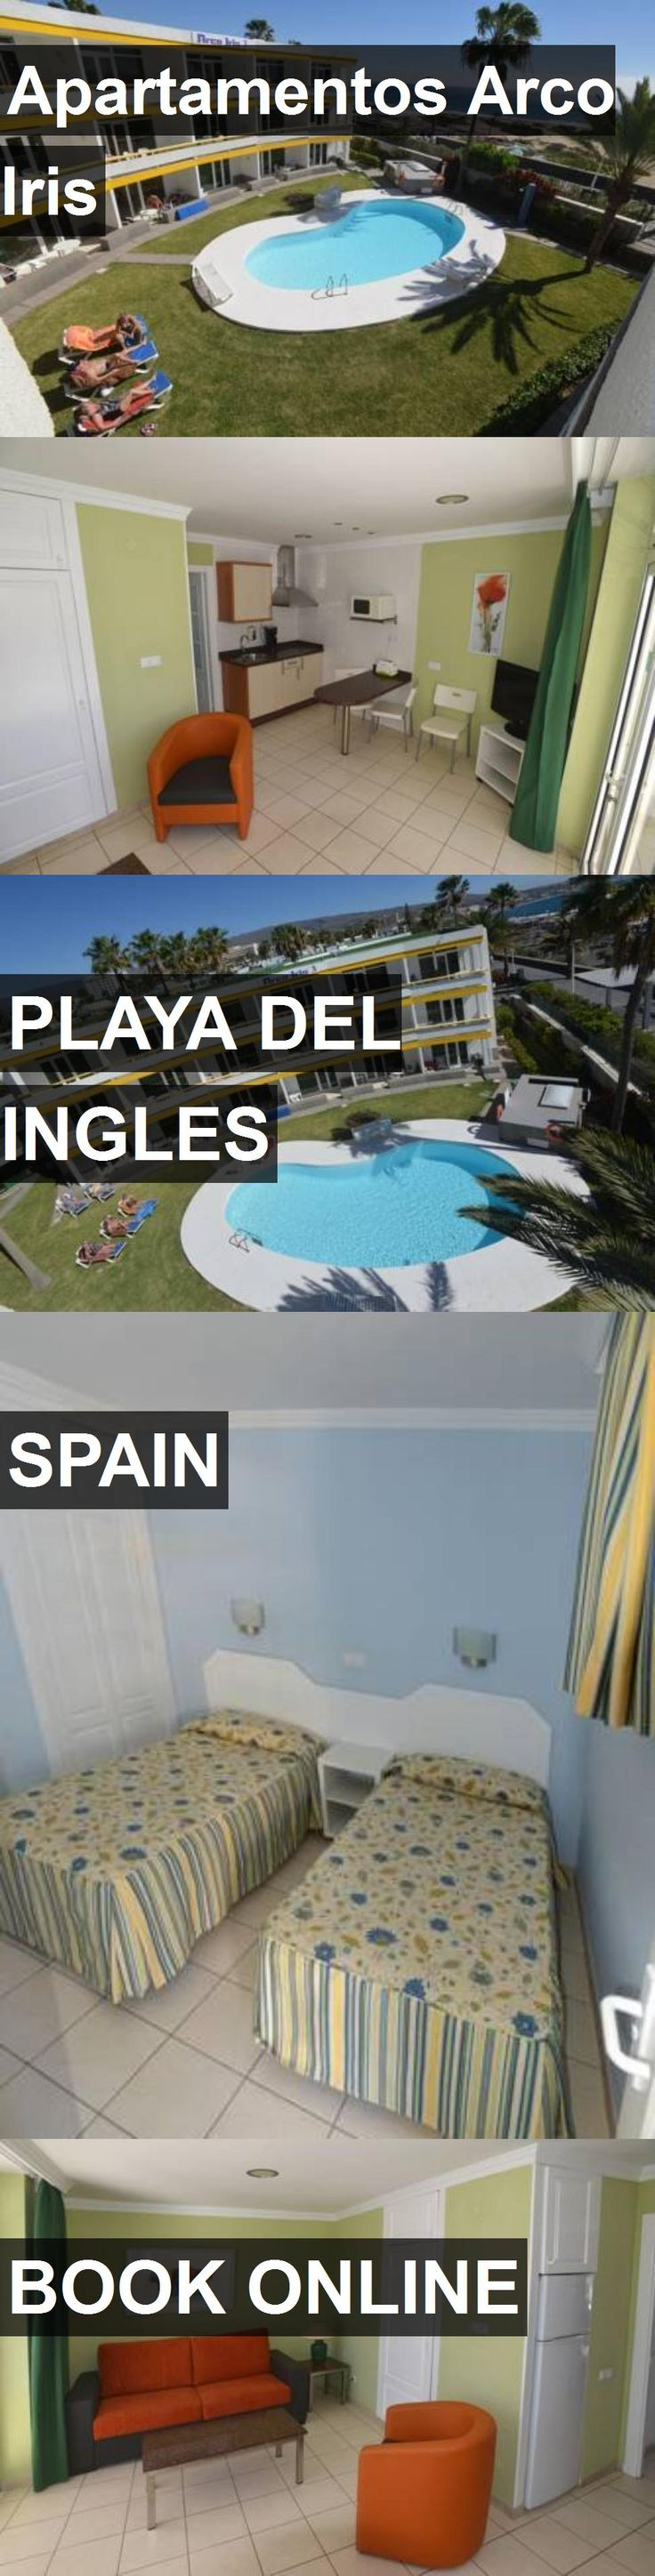 Hotel Apartamentos Arco Iris in Playa del Ingles, Spain. For more information, photos, reviews and best prices please follow the link. #Spain #PlayadelIngles #travel #vacation #hotel